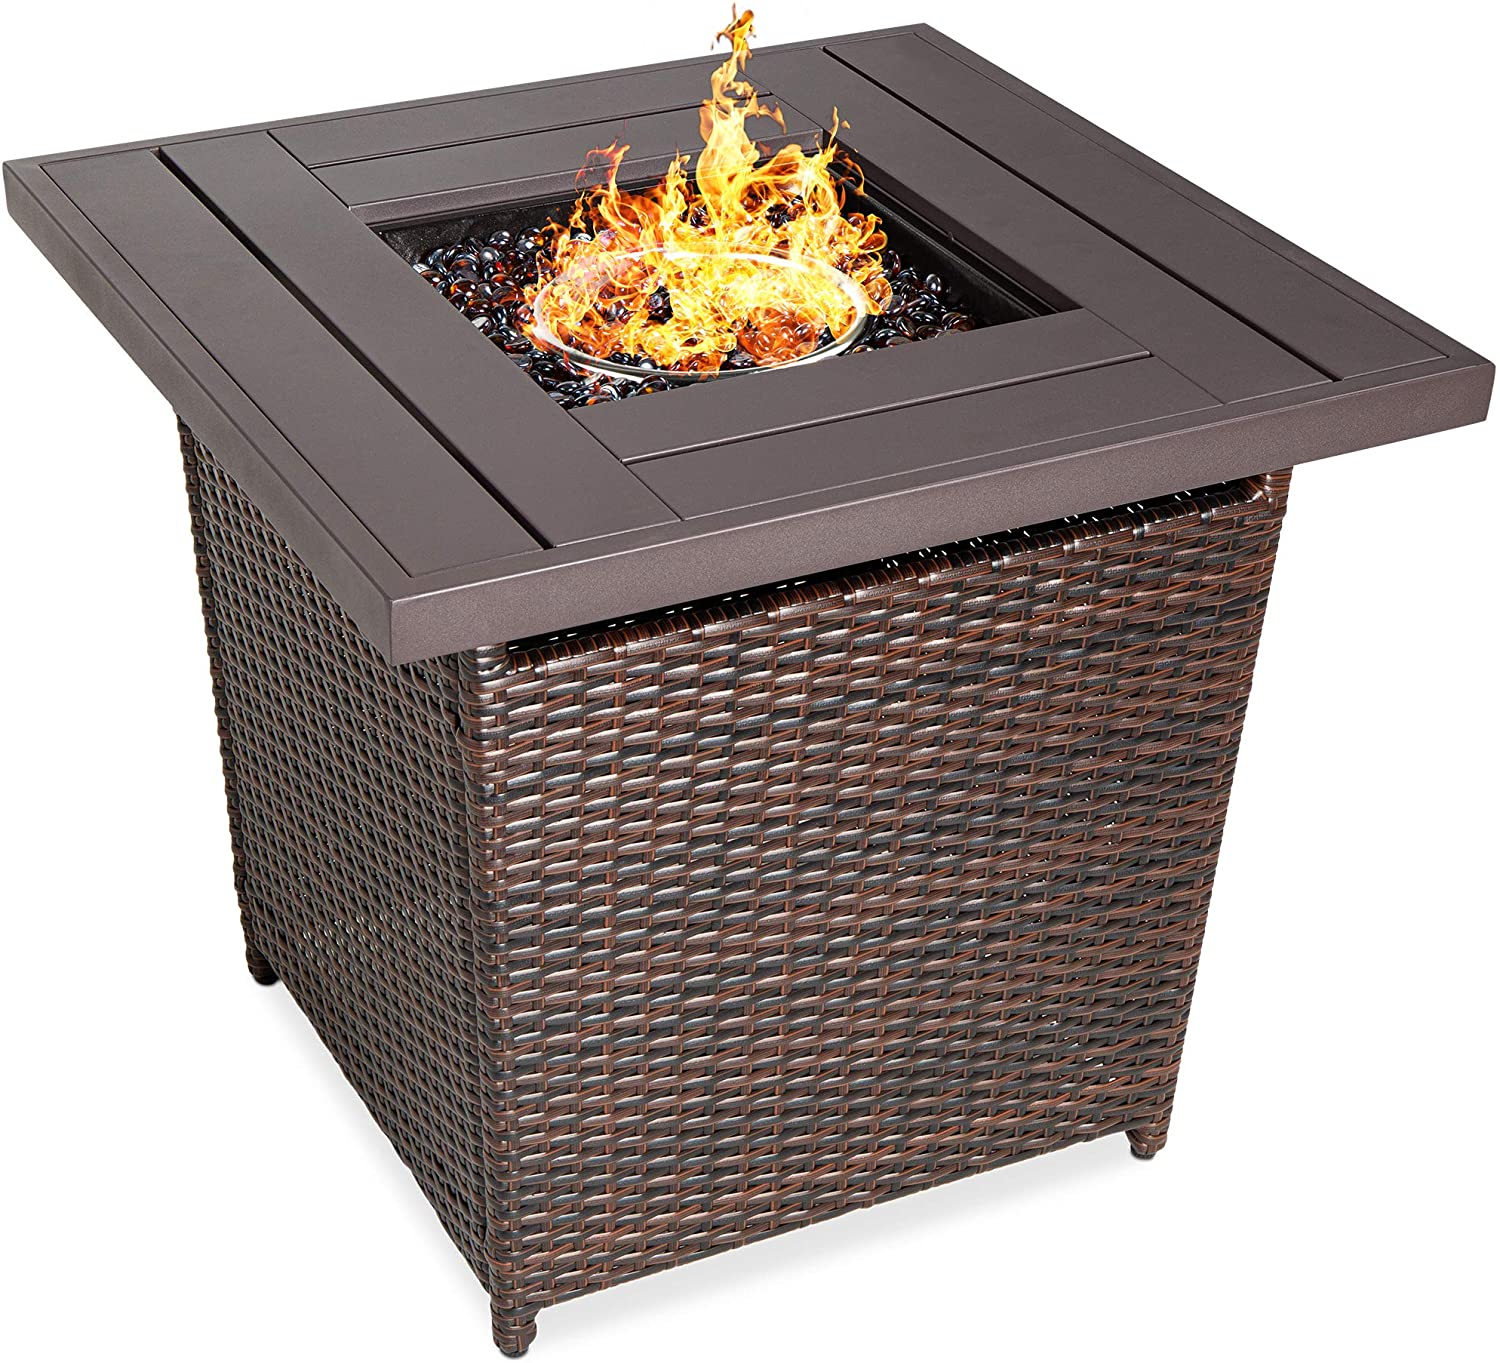 Amazon Com Best Choice Products 28in Fire Pit Table 50 000 Btu Outdoor Wicker Patio Propane Gas W Faux Wood Tabletop Glass Beads Cover Hideaway Tank Holder Lid Brown Garden Outdoor